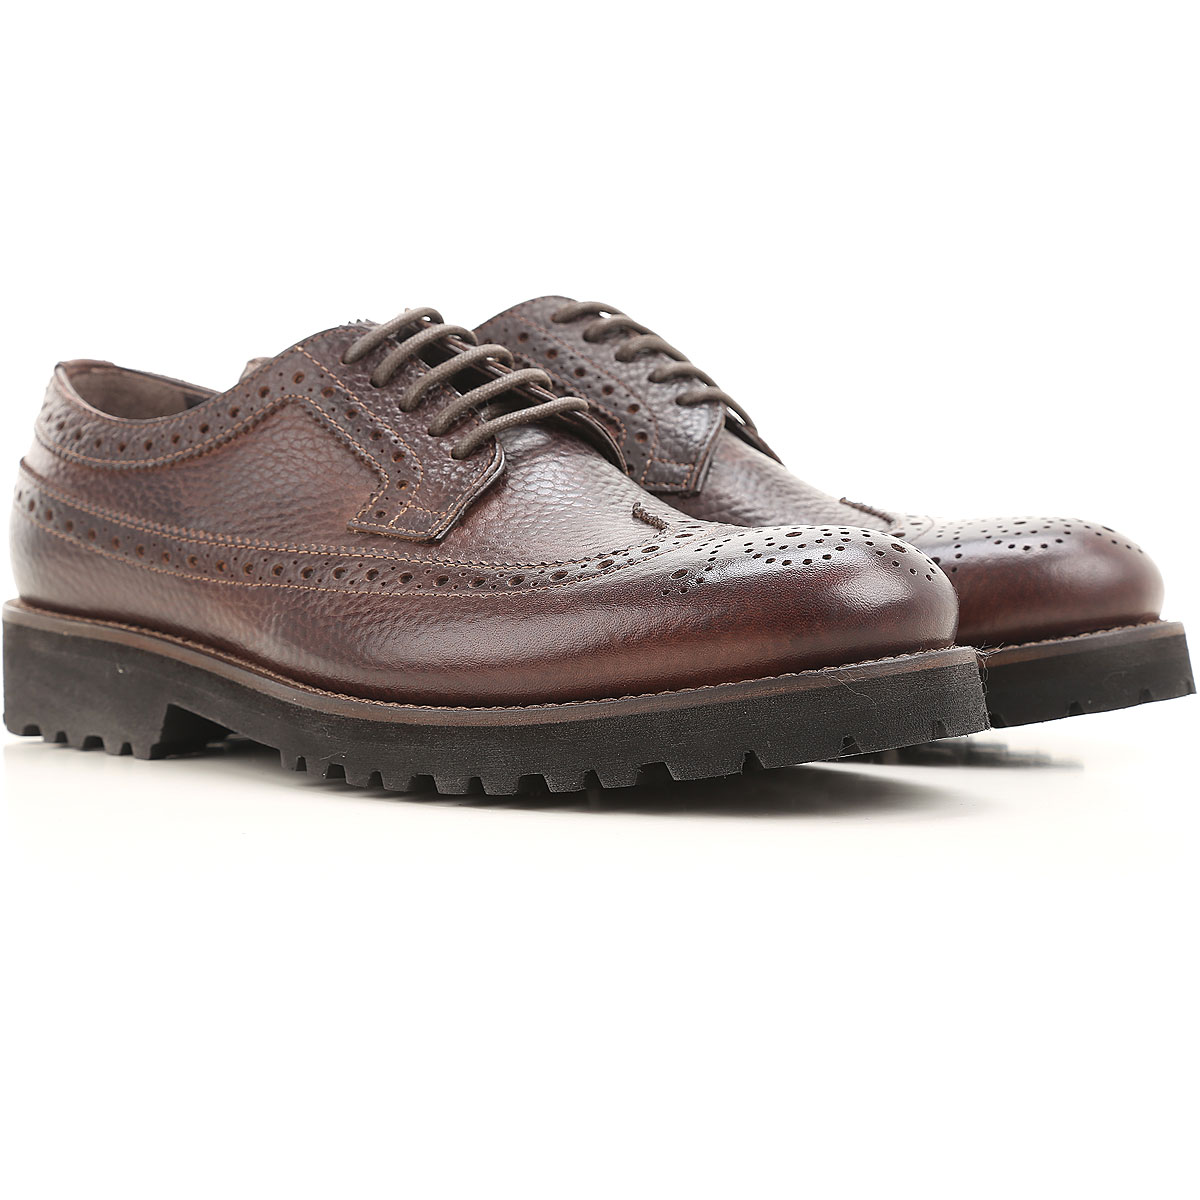 Image of Jerold Wilton Lace Up Shoes for Men Oxfords, Derbies and Brogues, Brown coffee, Leather, 2017, 11 7 8.5 9.5